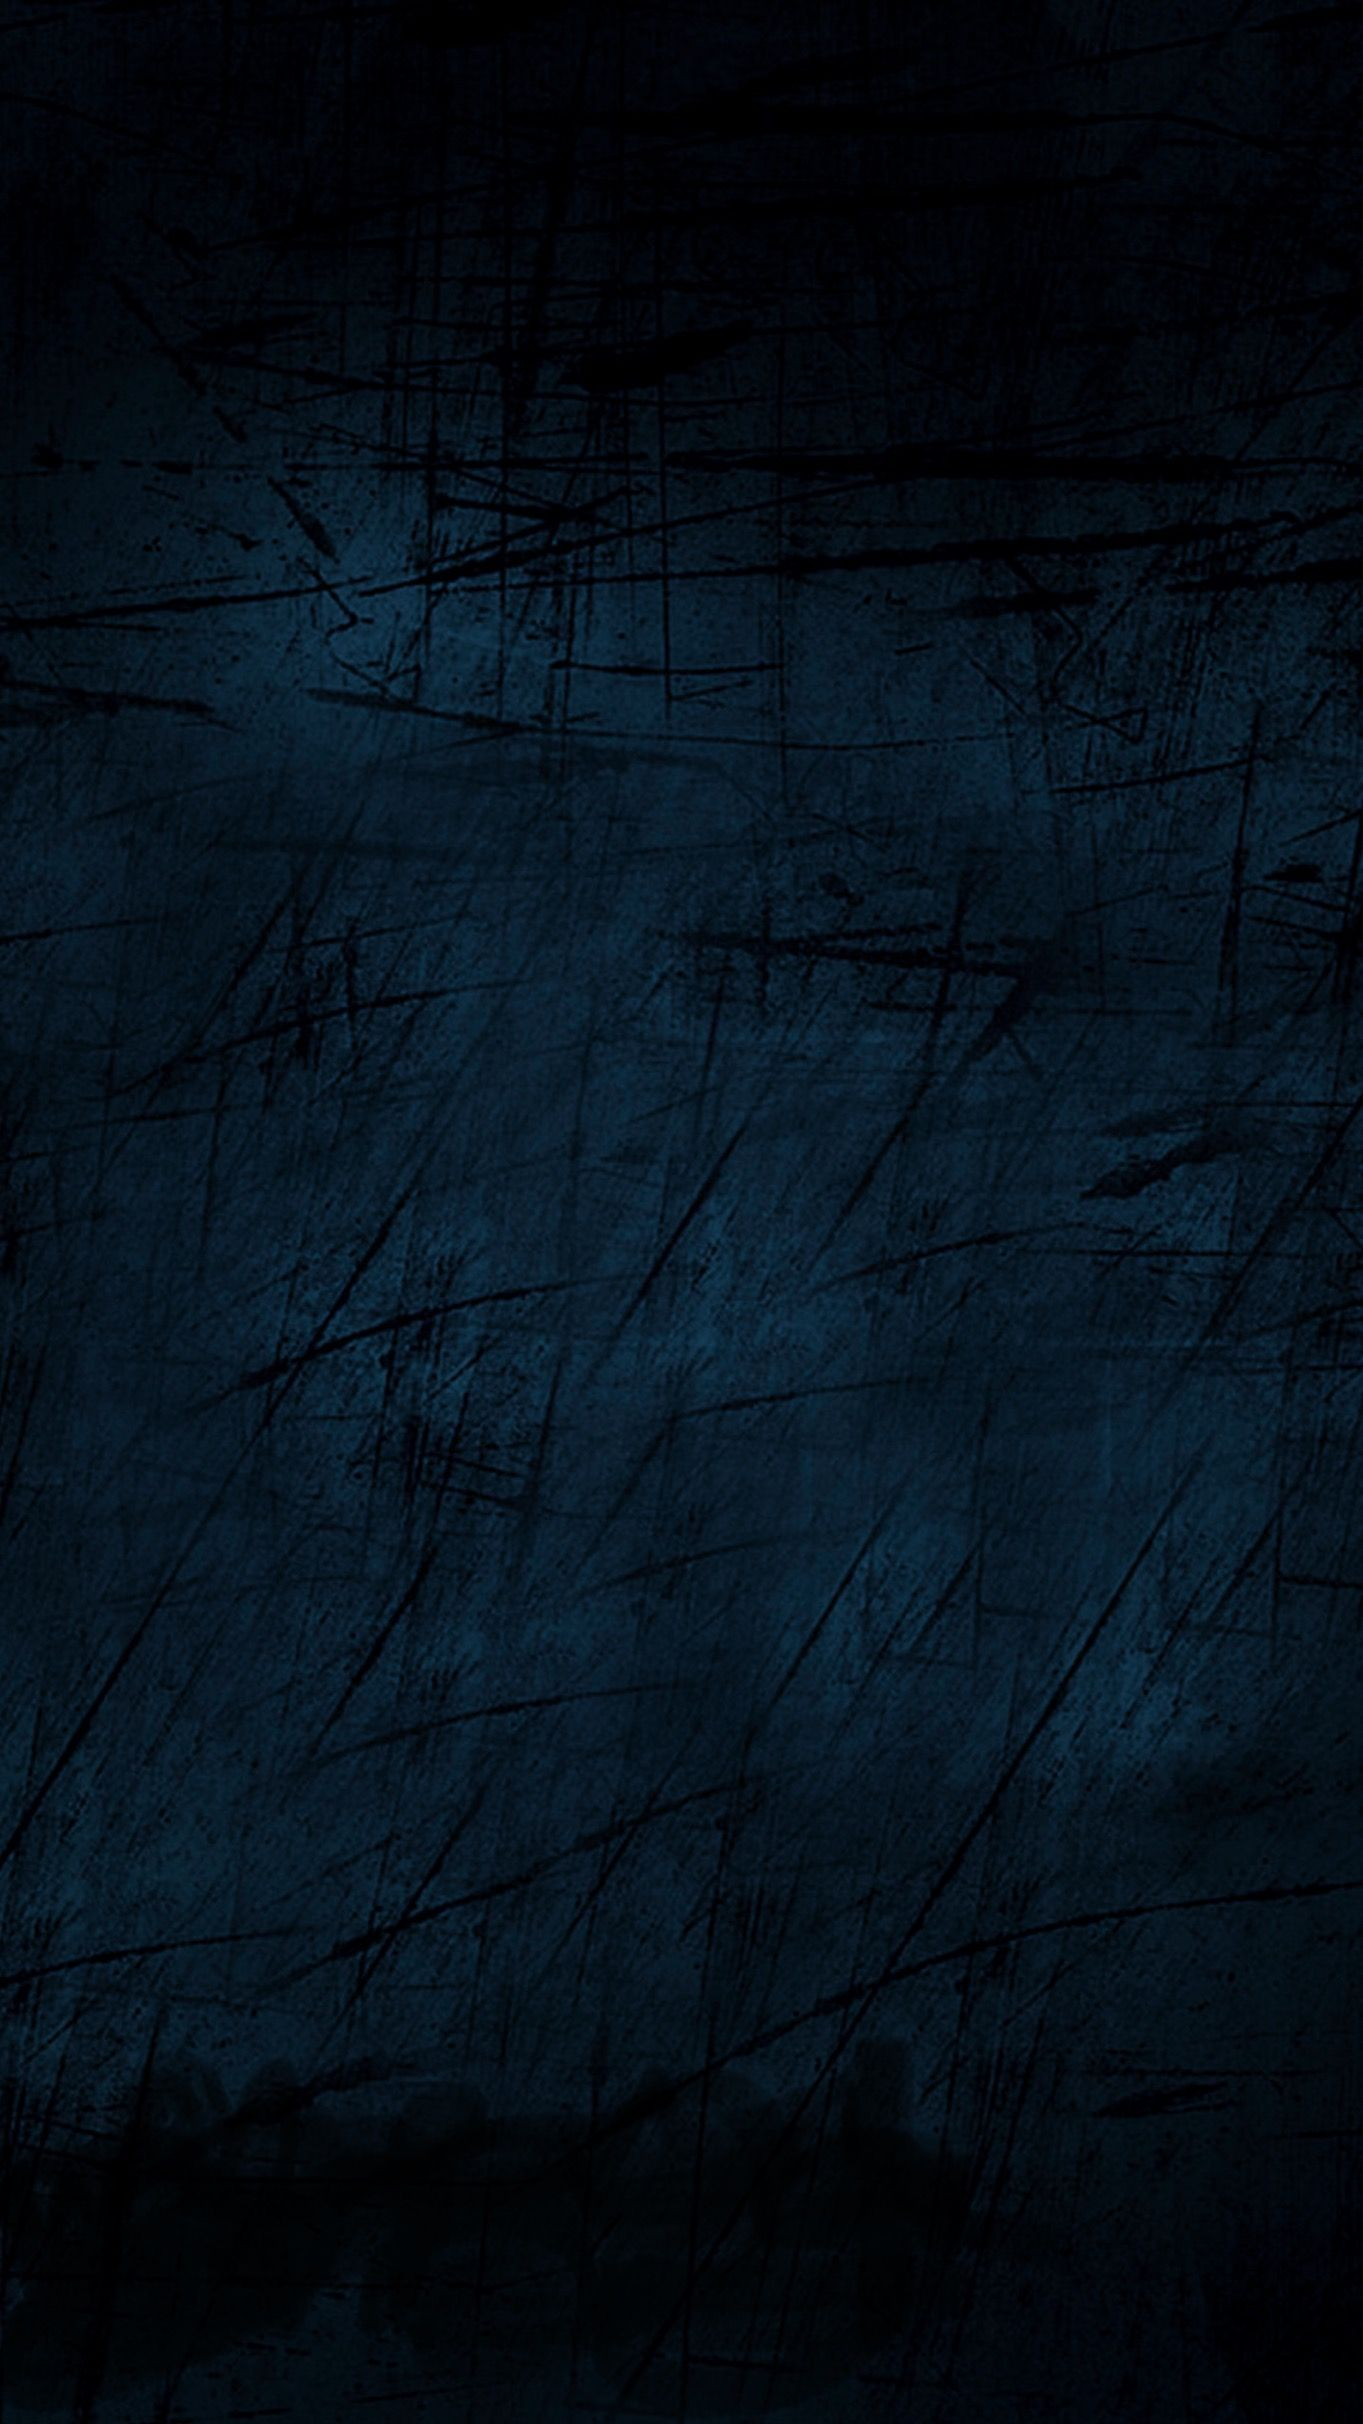 Black Wallpaper Iphone Dark Patterns